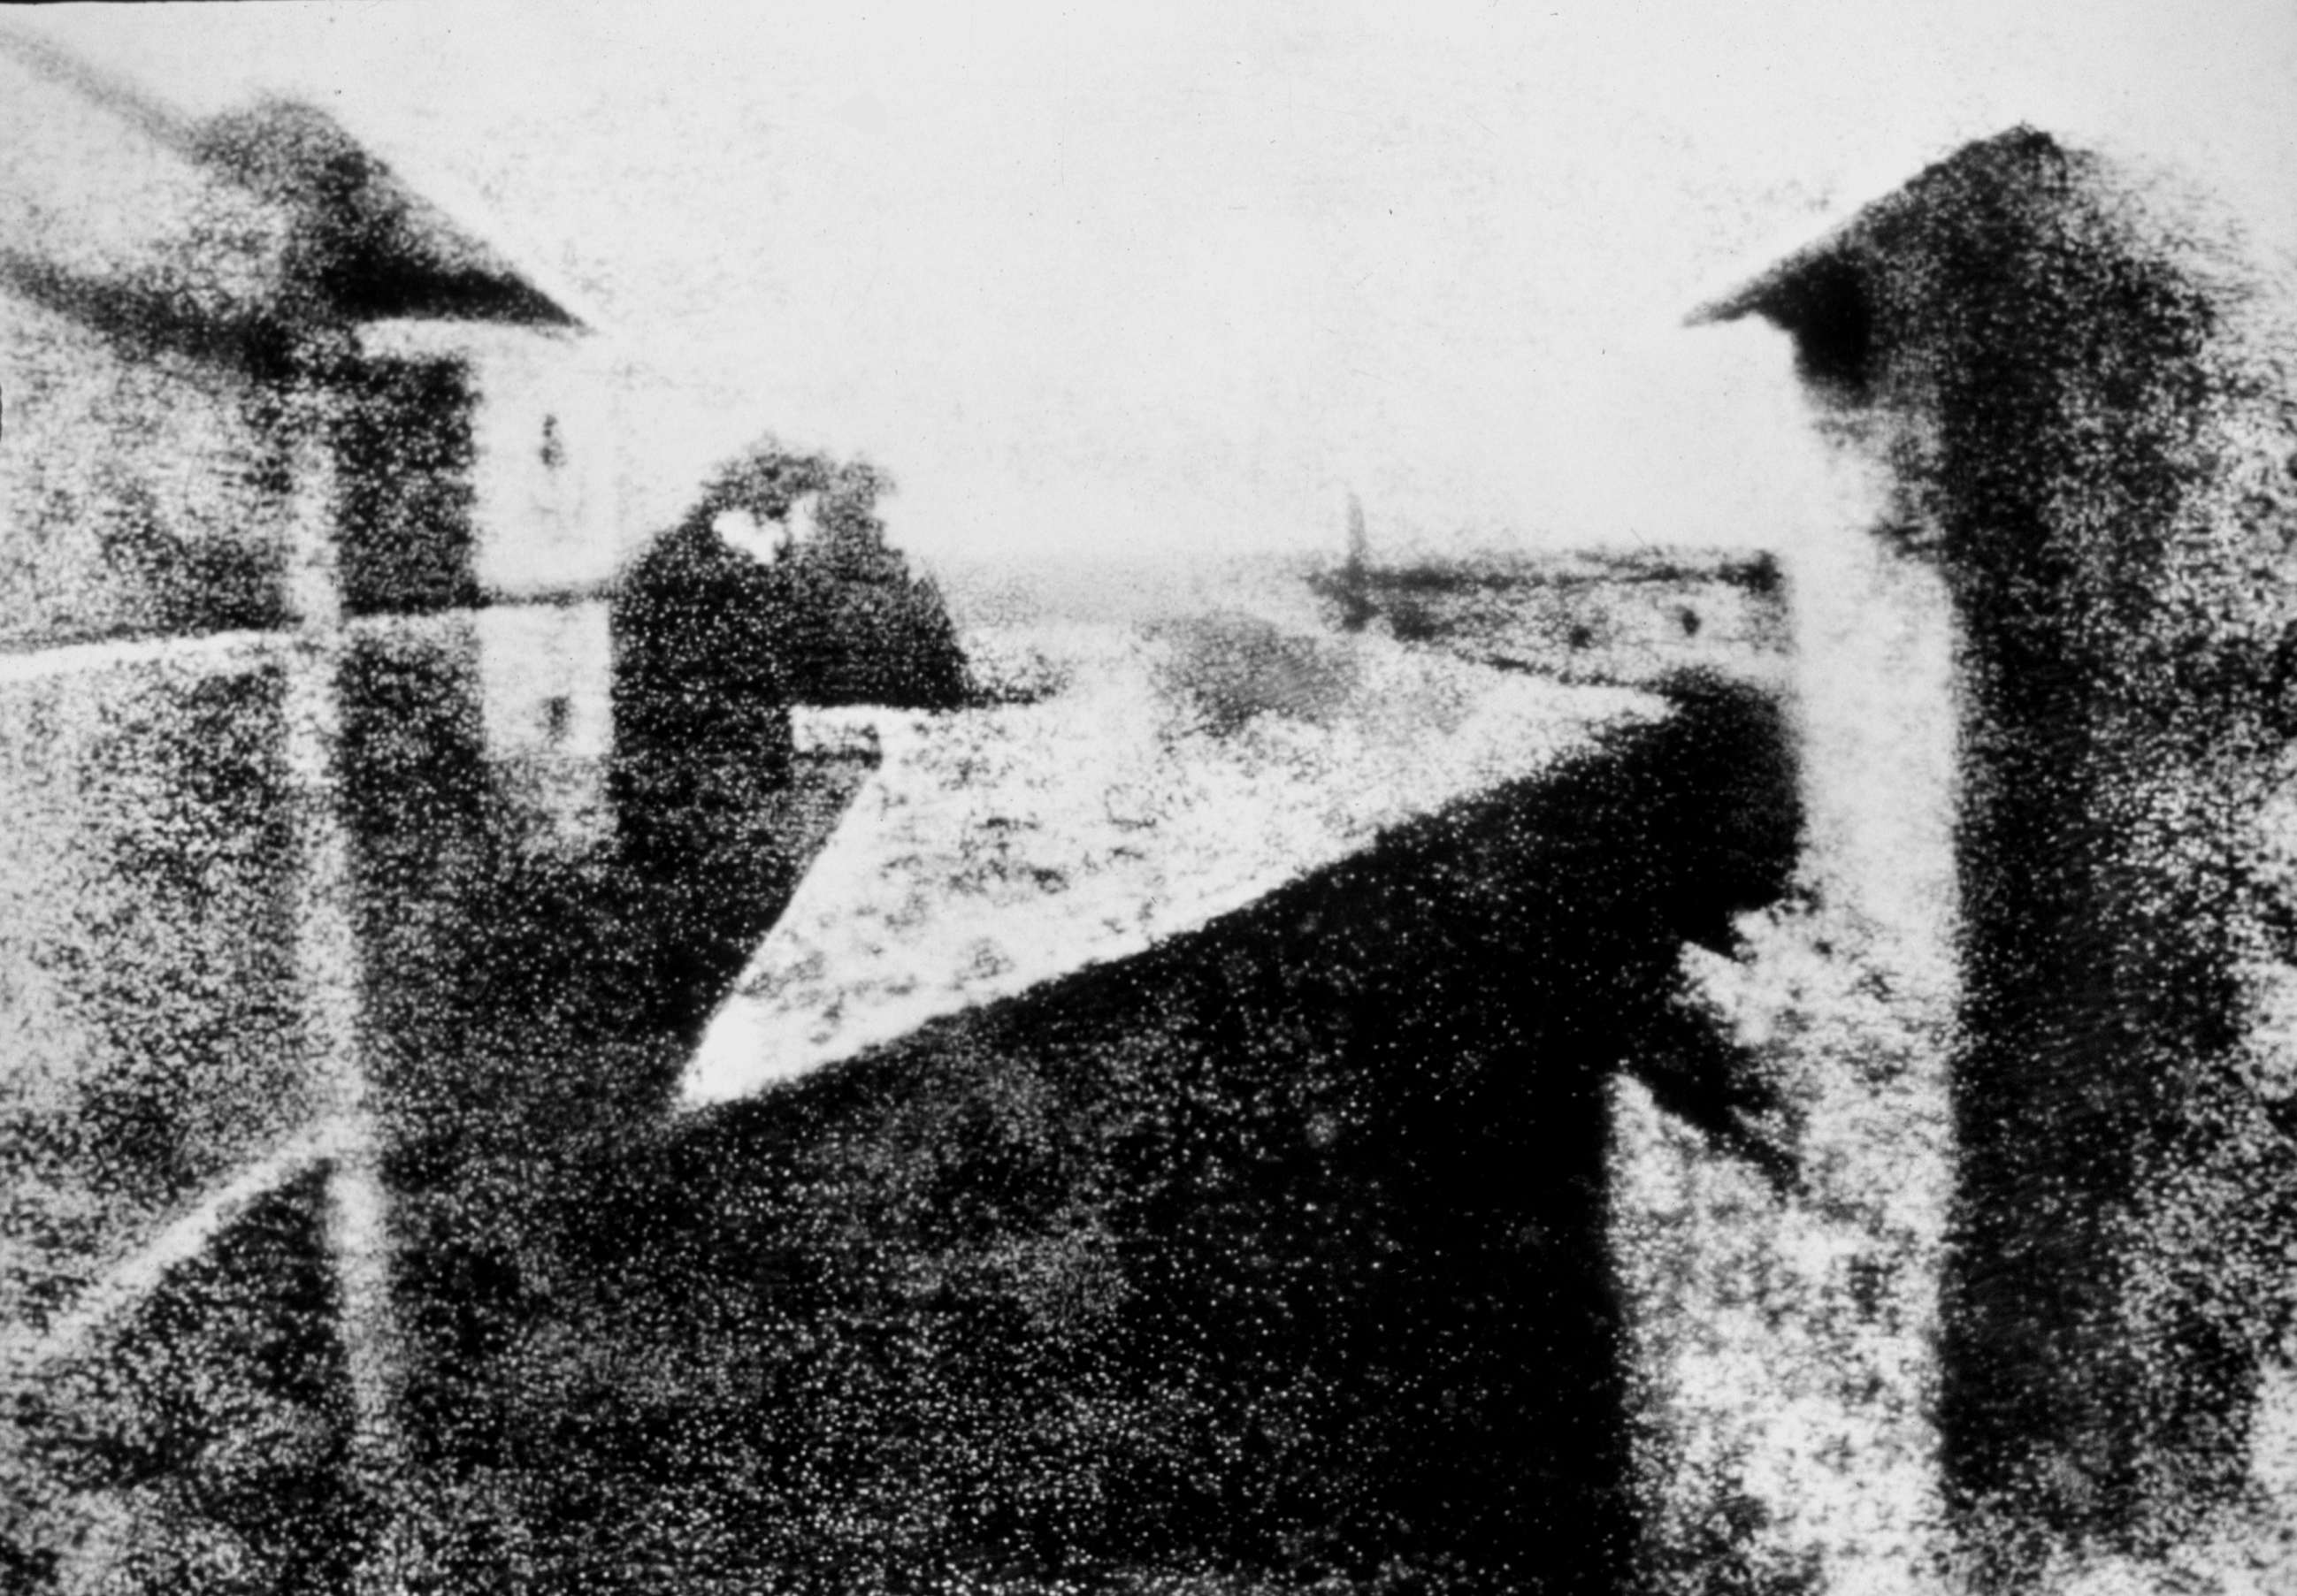 View From The Window At Le Gras 1826 Or 1827 Earliest Surviving Camera Photograph